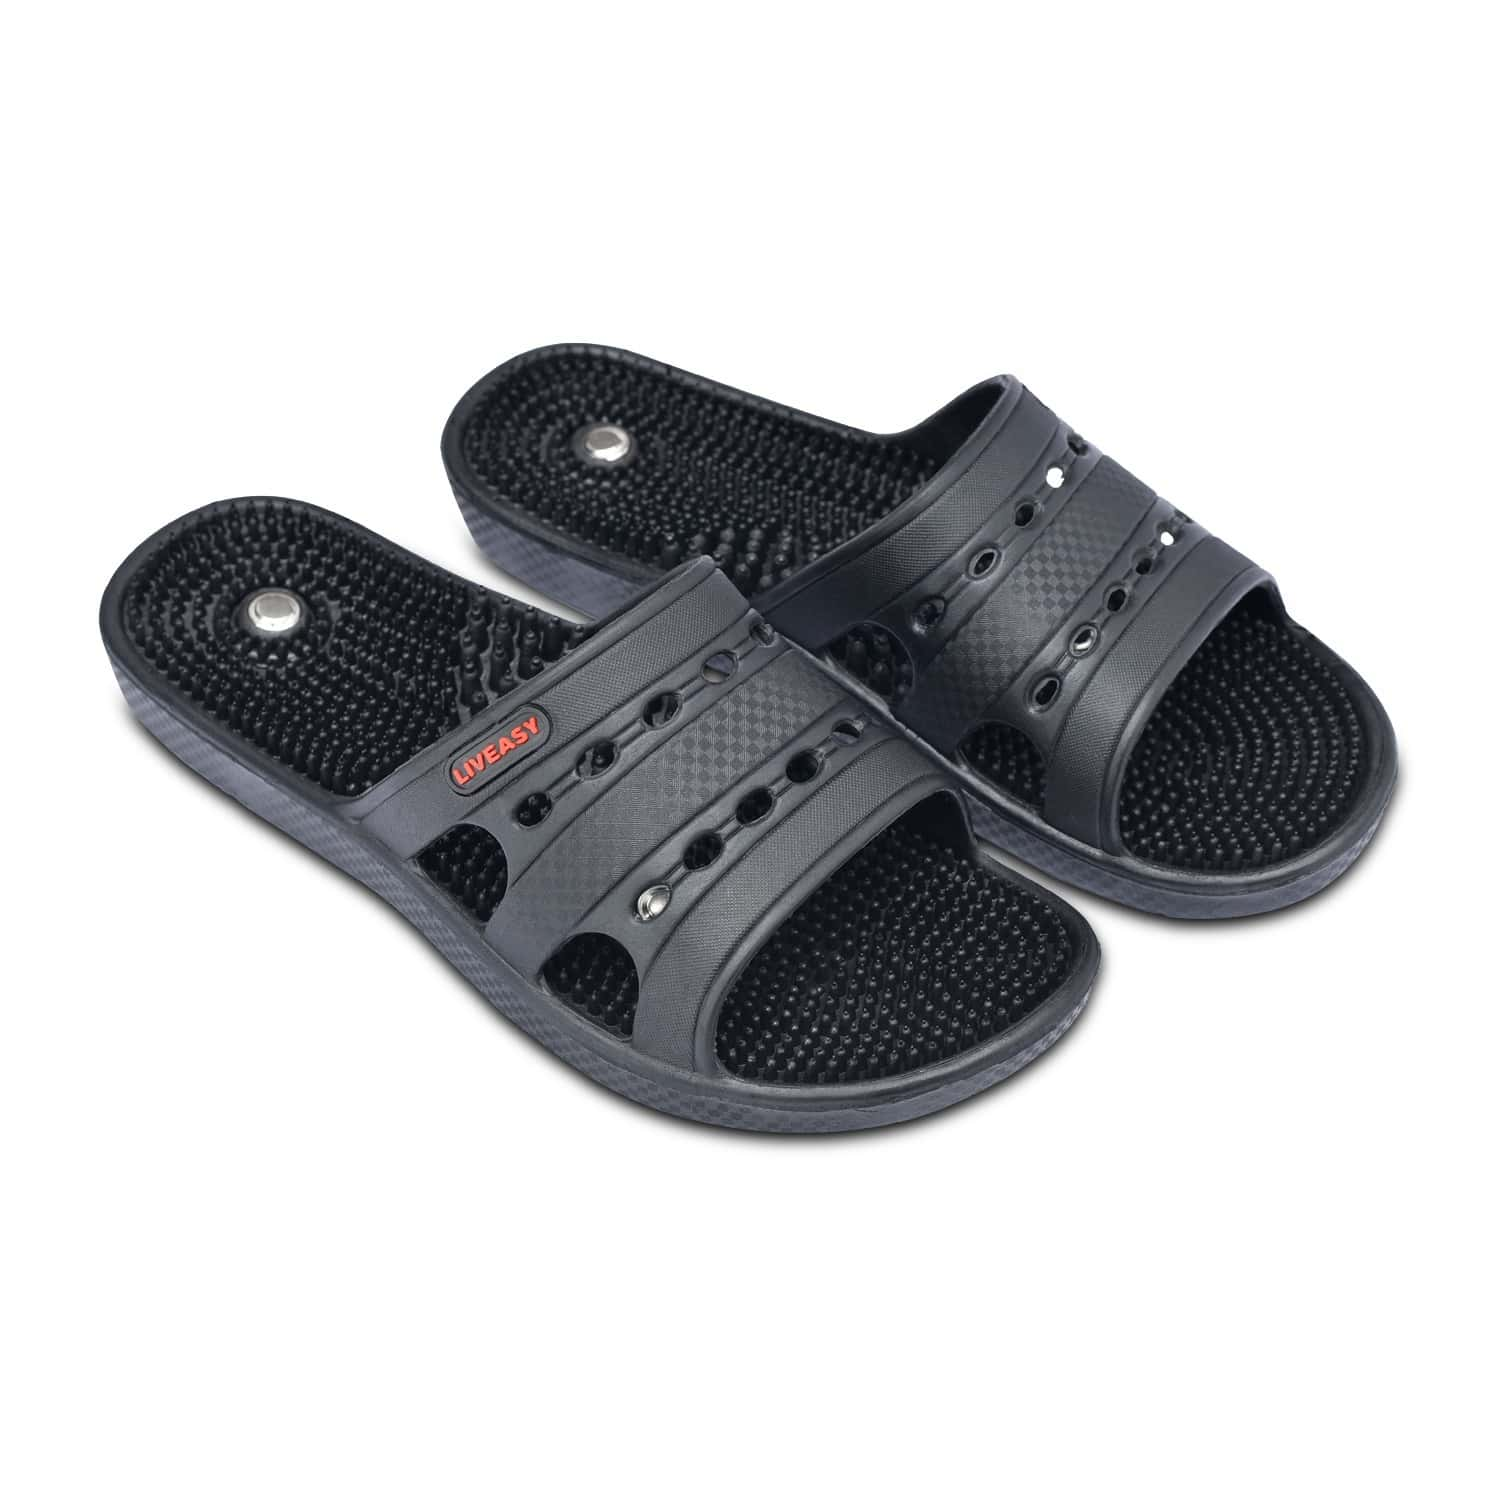 Liveasy Ortho Care Acupressure Slippers - Women (black) Size 6